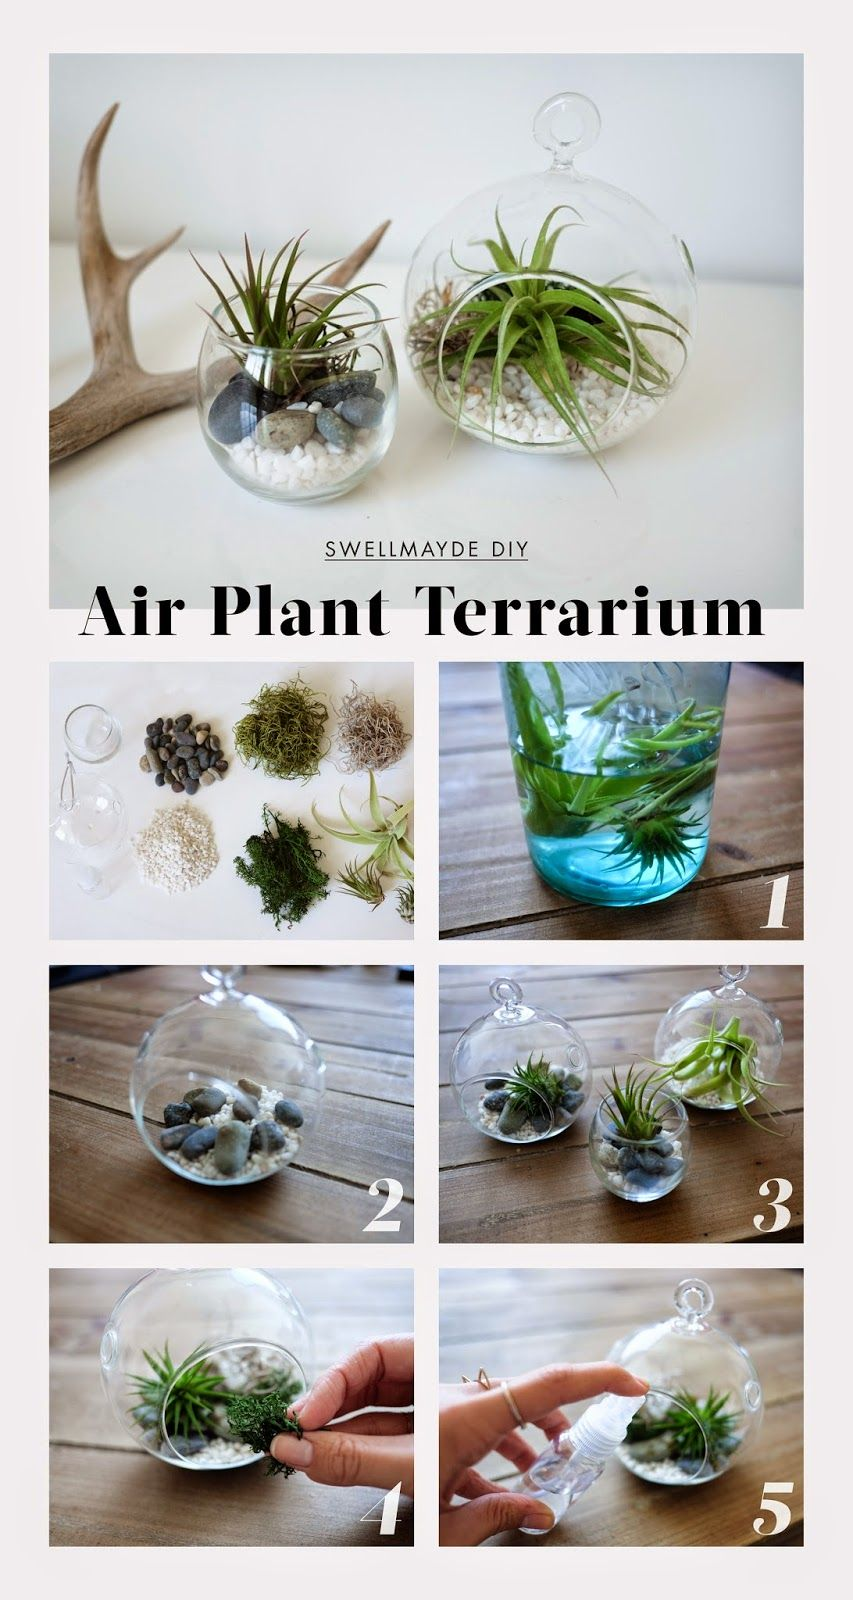 air plant terrarium crafts pinterest pflanzen zimmerpflanzen und kleine g rten. Black Bedroom Furniture Sets. Home Design Ideas